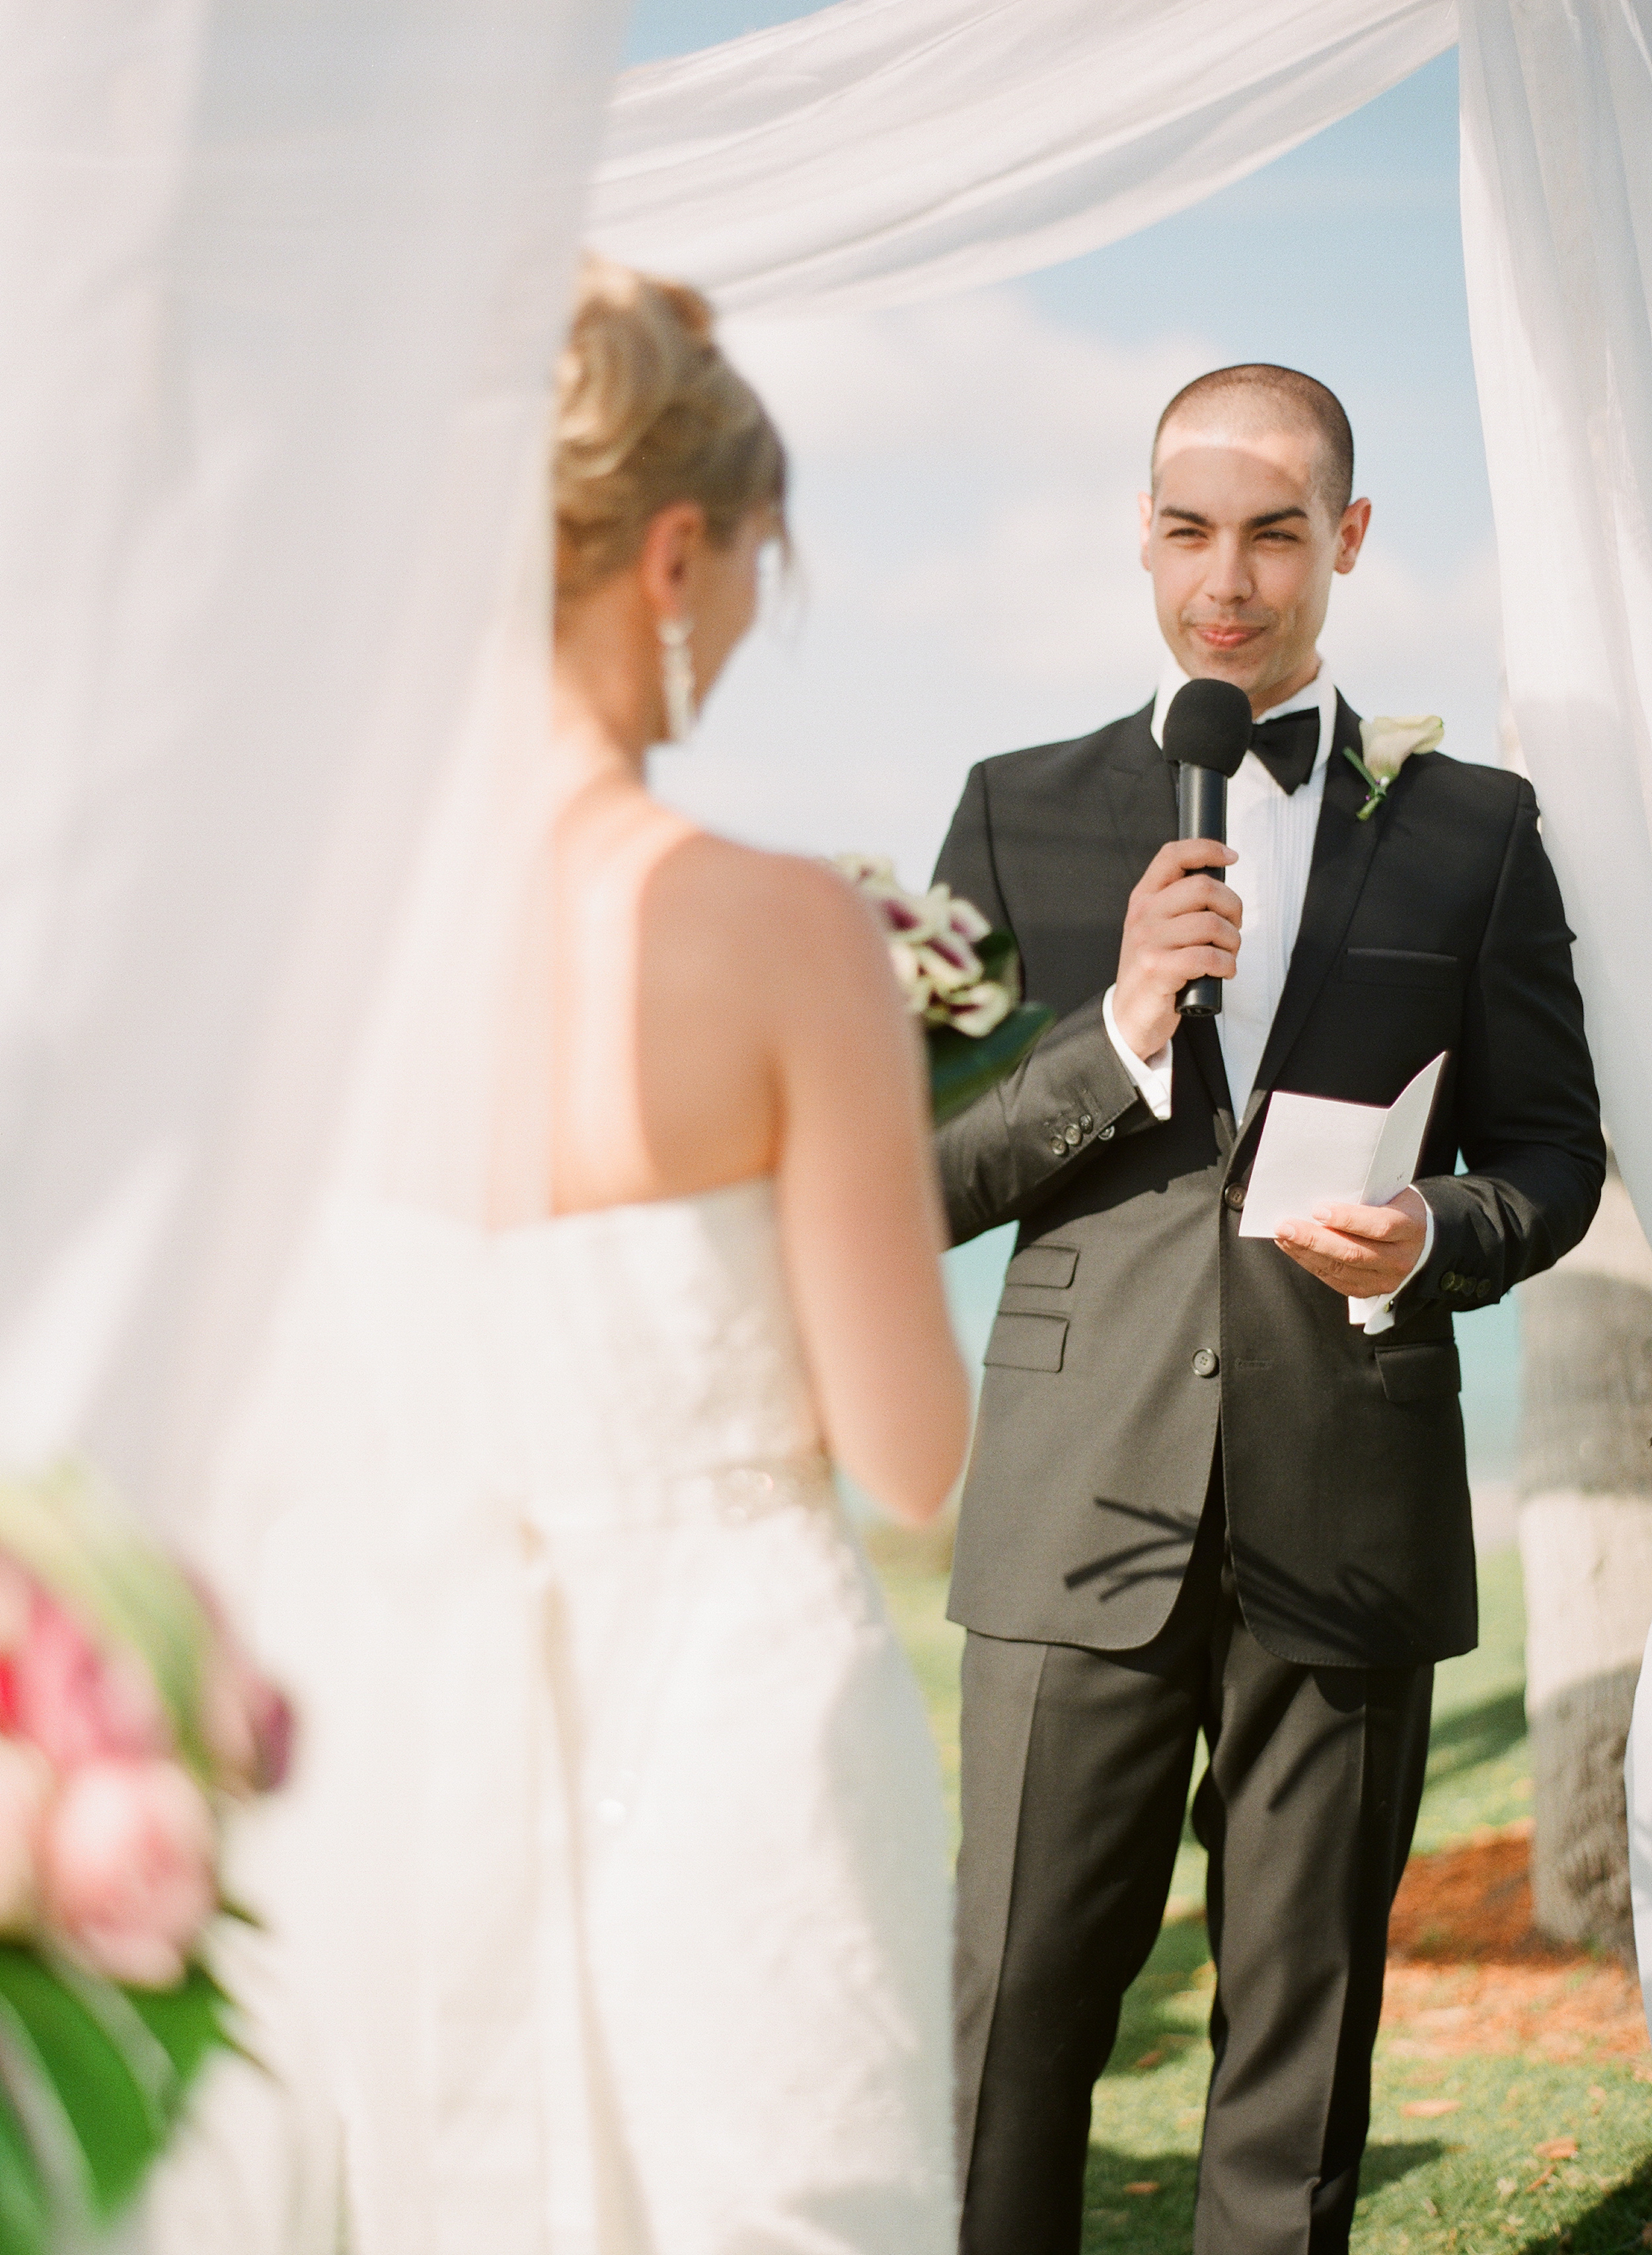 a groom recites his vows under the white canopy during his destination wedding at Vieques Island photographed by Destination Wedding Photographer, Lexia Frank, a film photographer specializing in destination weddings and luxury weddings worldwide.